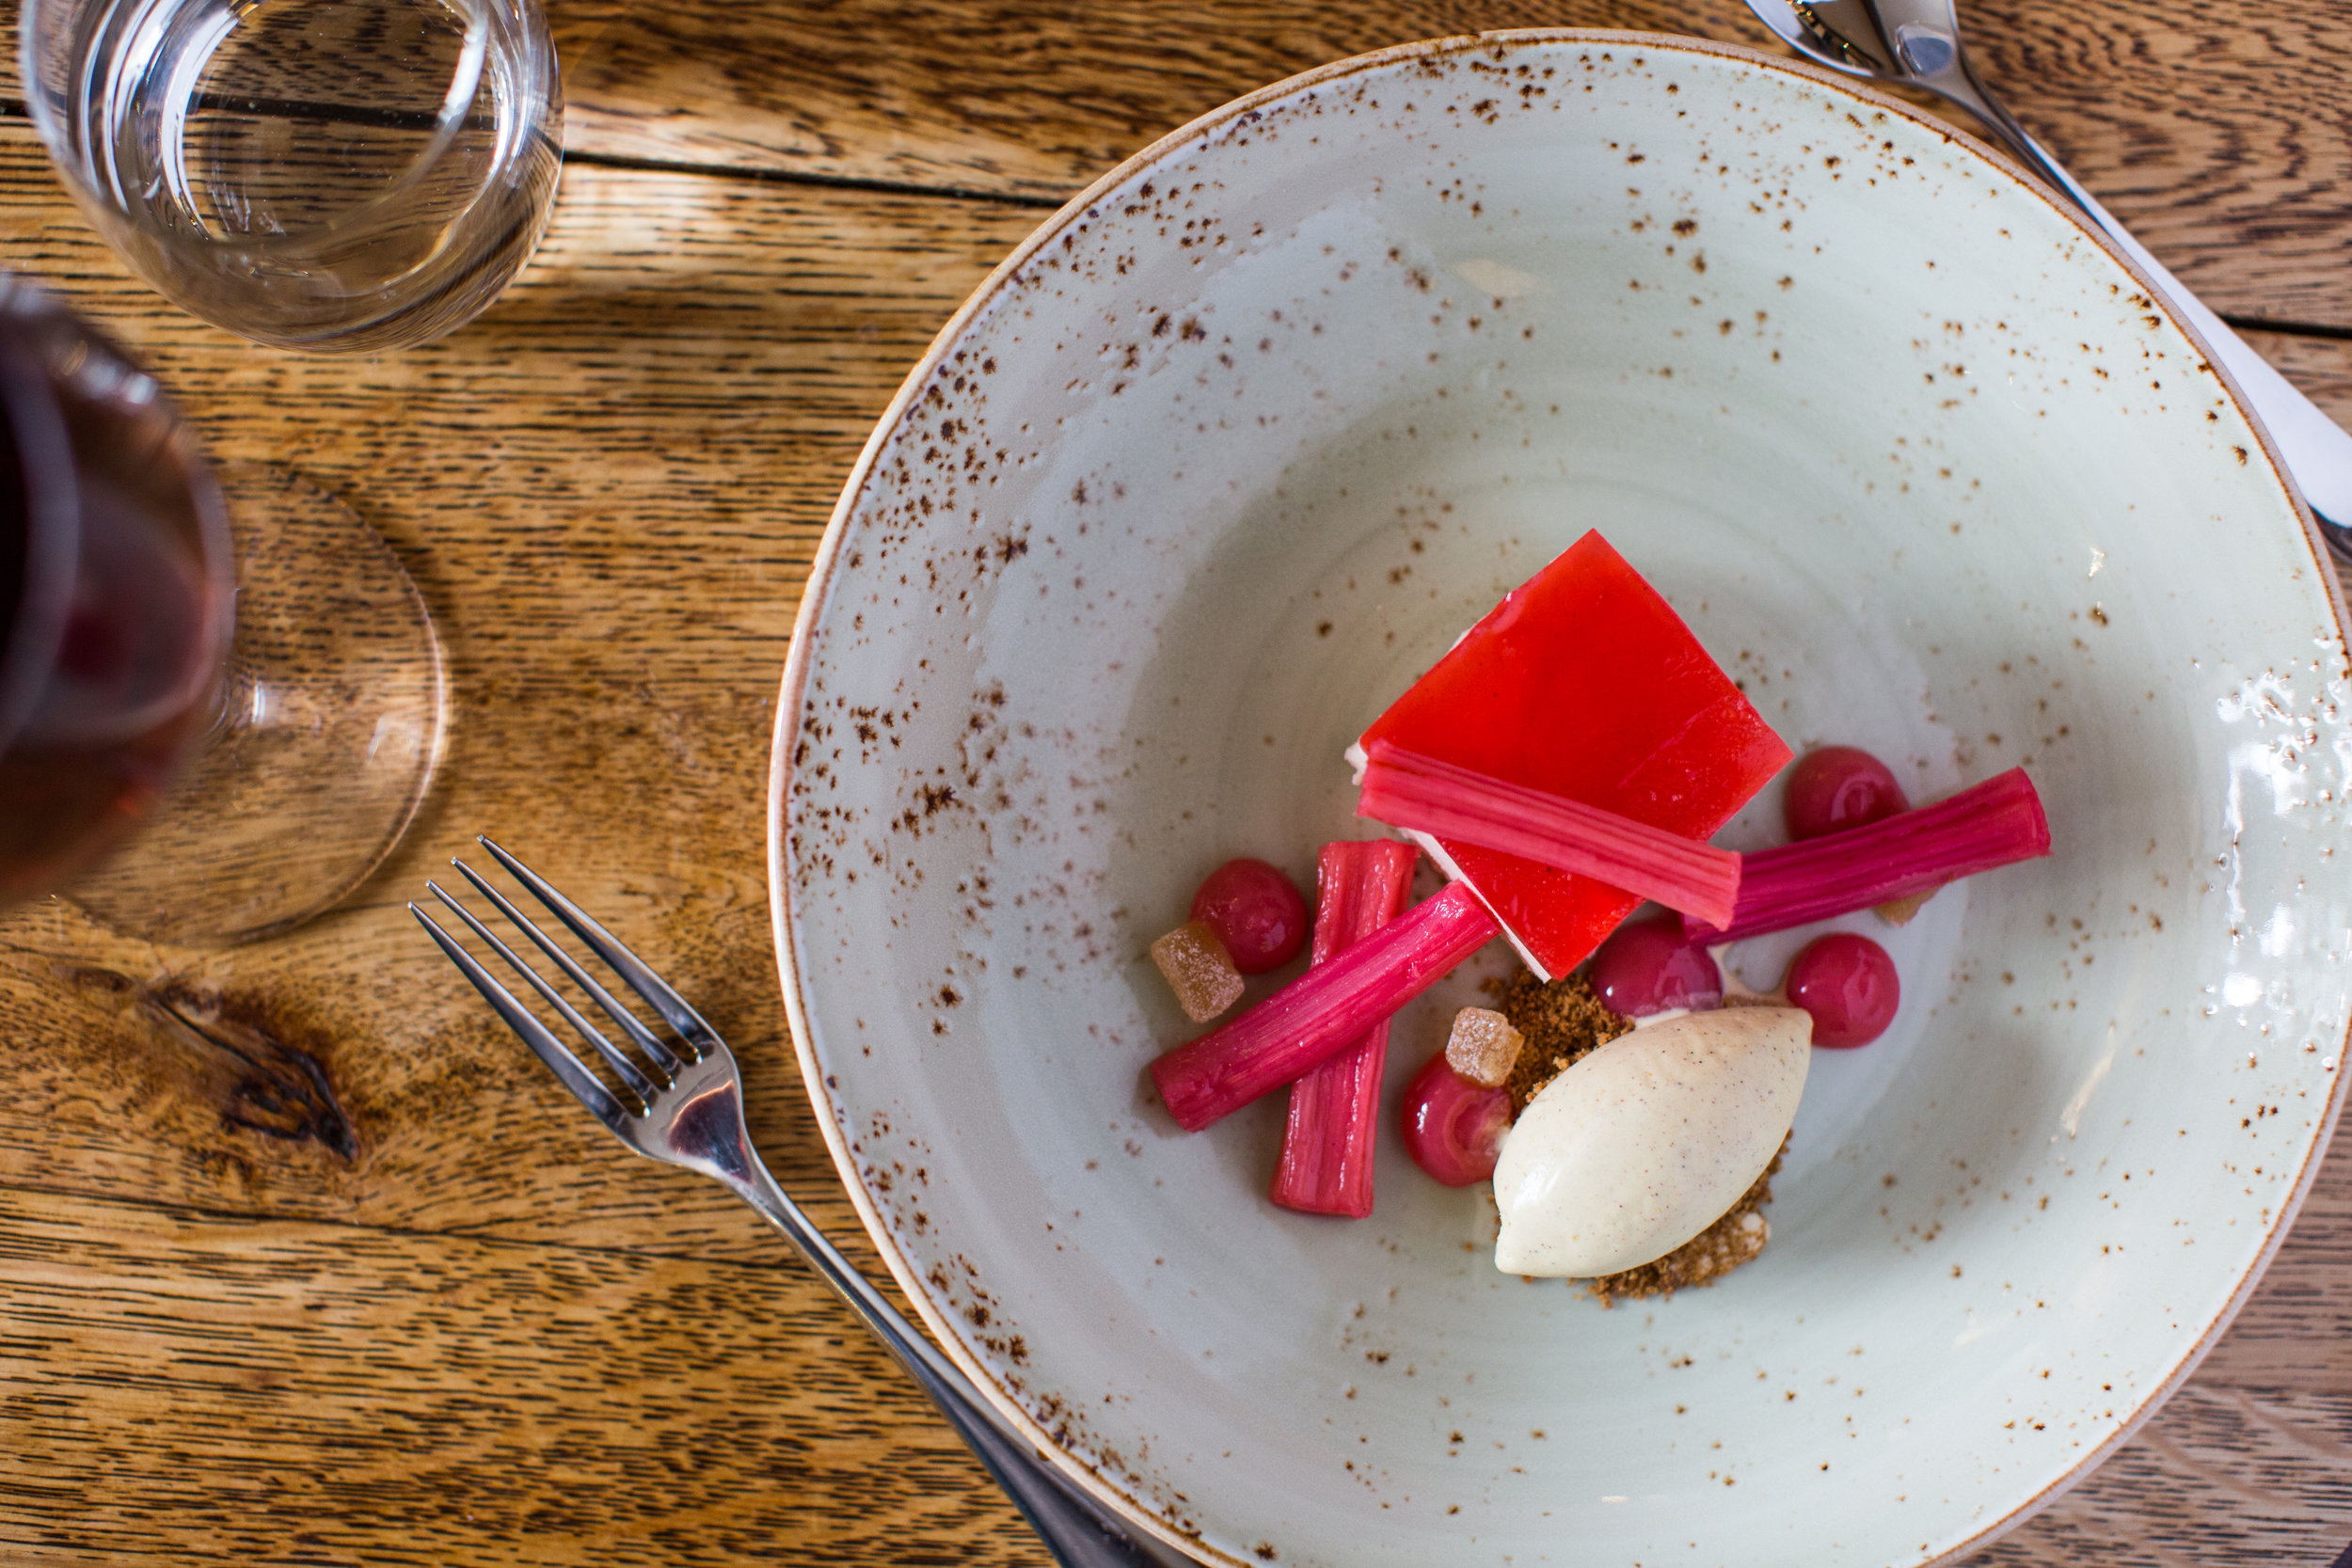 Dessert at The Kings Hotel Chipping Campden